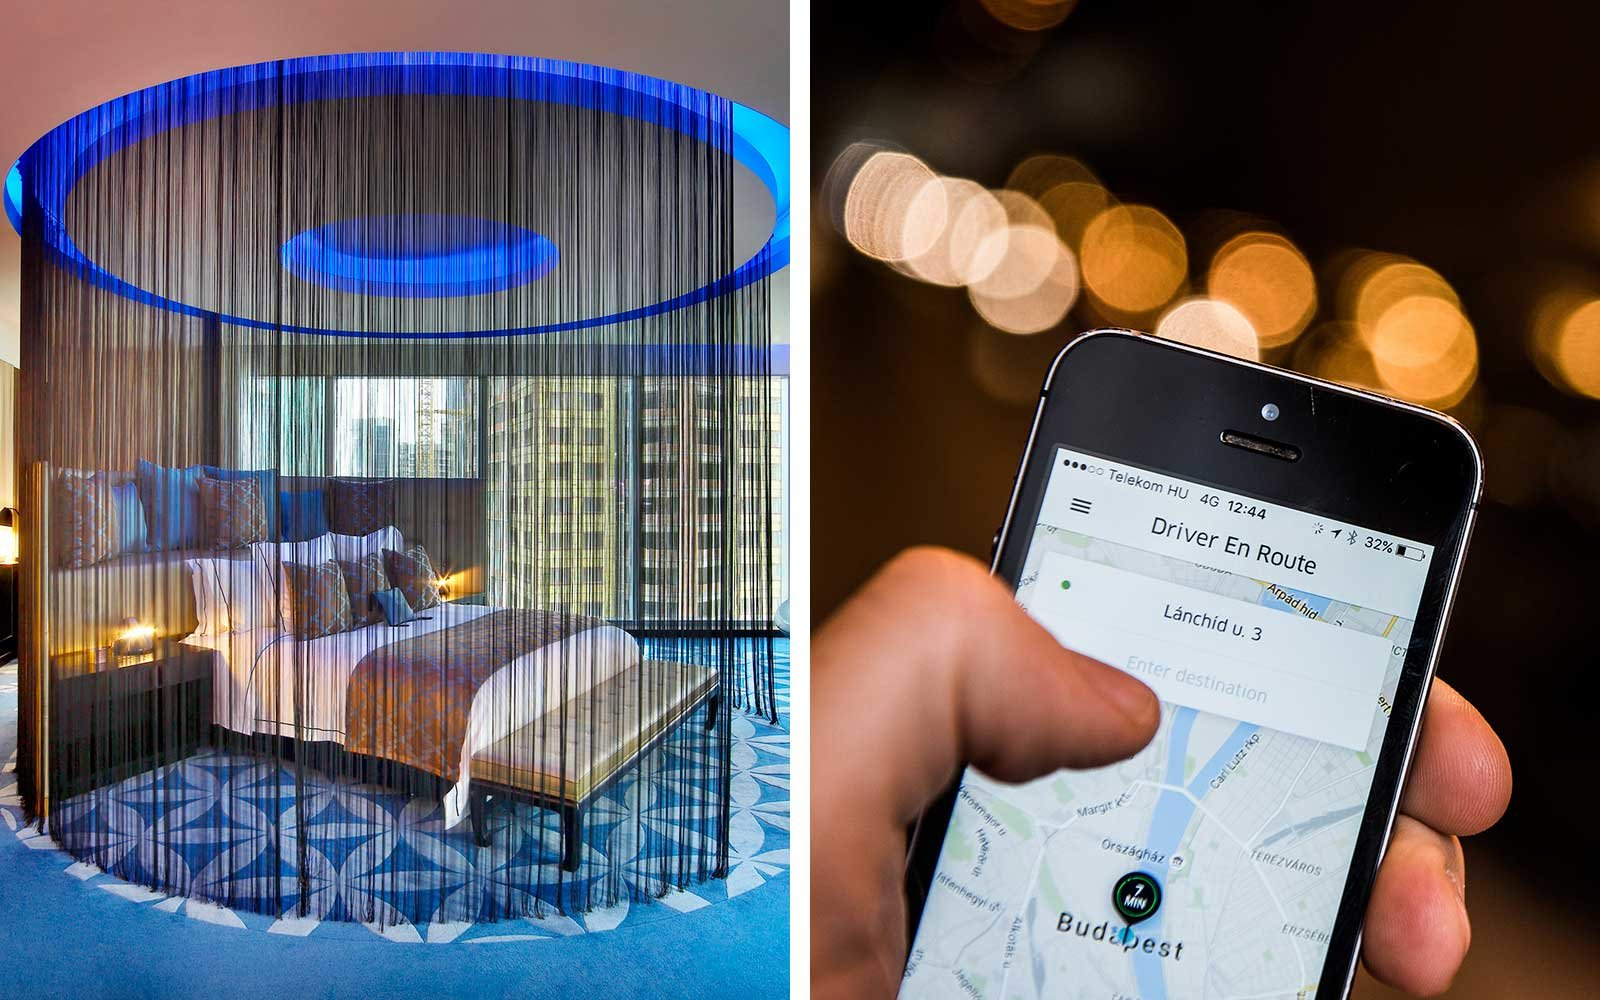 SPG & Uber: Starwood is Devaluing Its Points Program with Uber